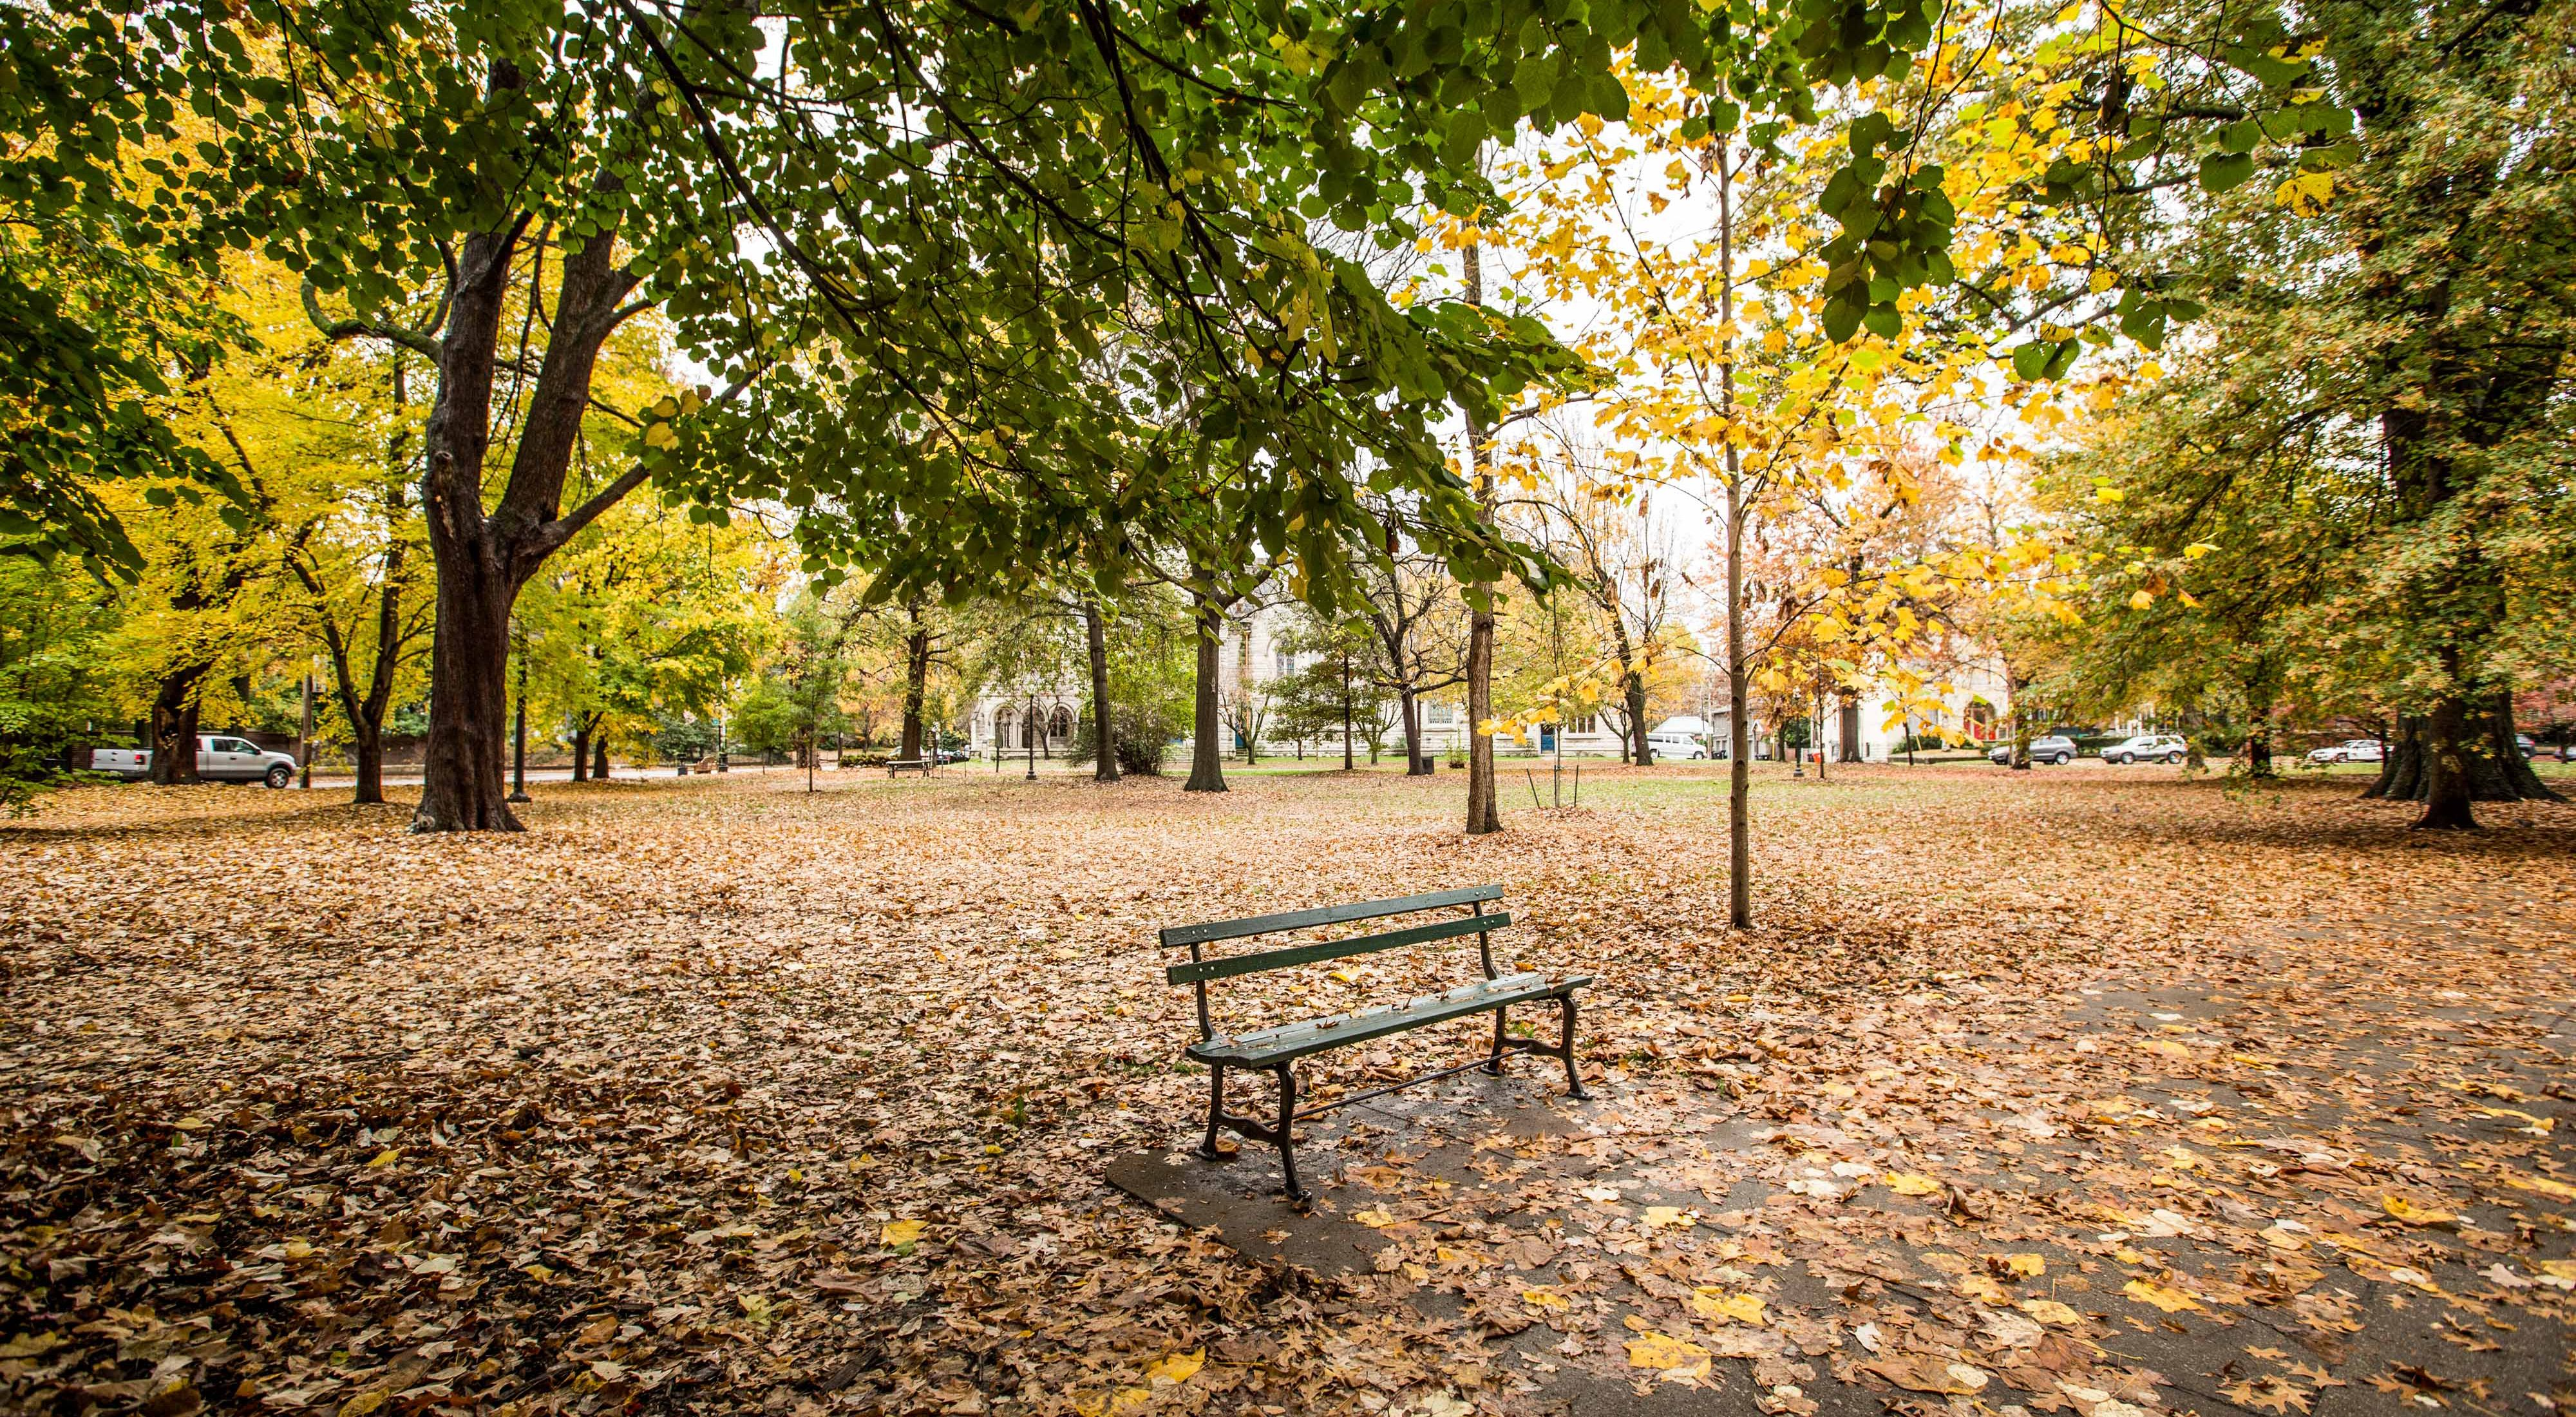 park bench surrounded by autumn trees in a city.